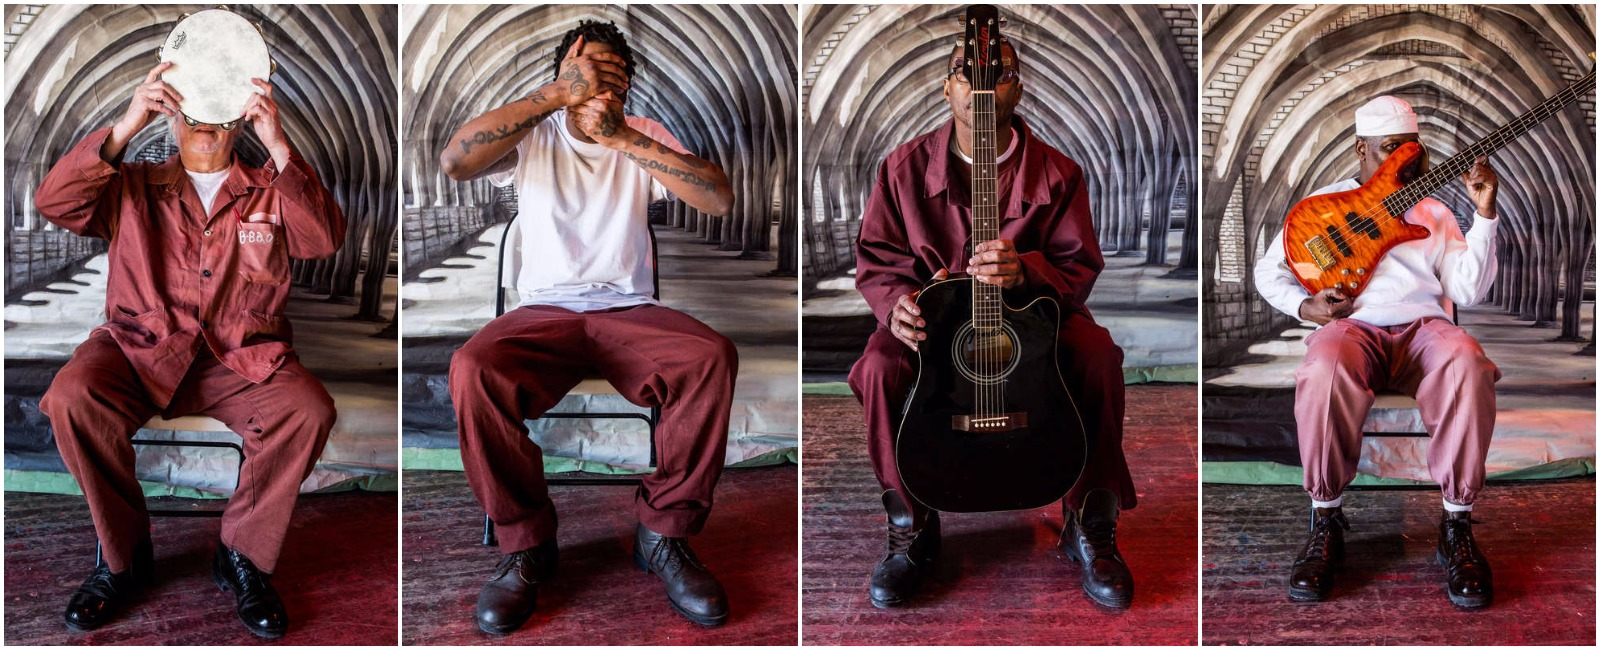 Inmates at the State Correctional Institution, Graterford, participating in the Songs in the Key of Free program, were allowed to sit for a portrait but not to show their faces, per state prison rules.